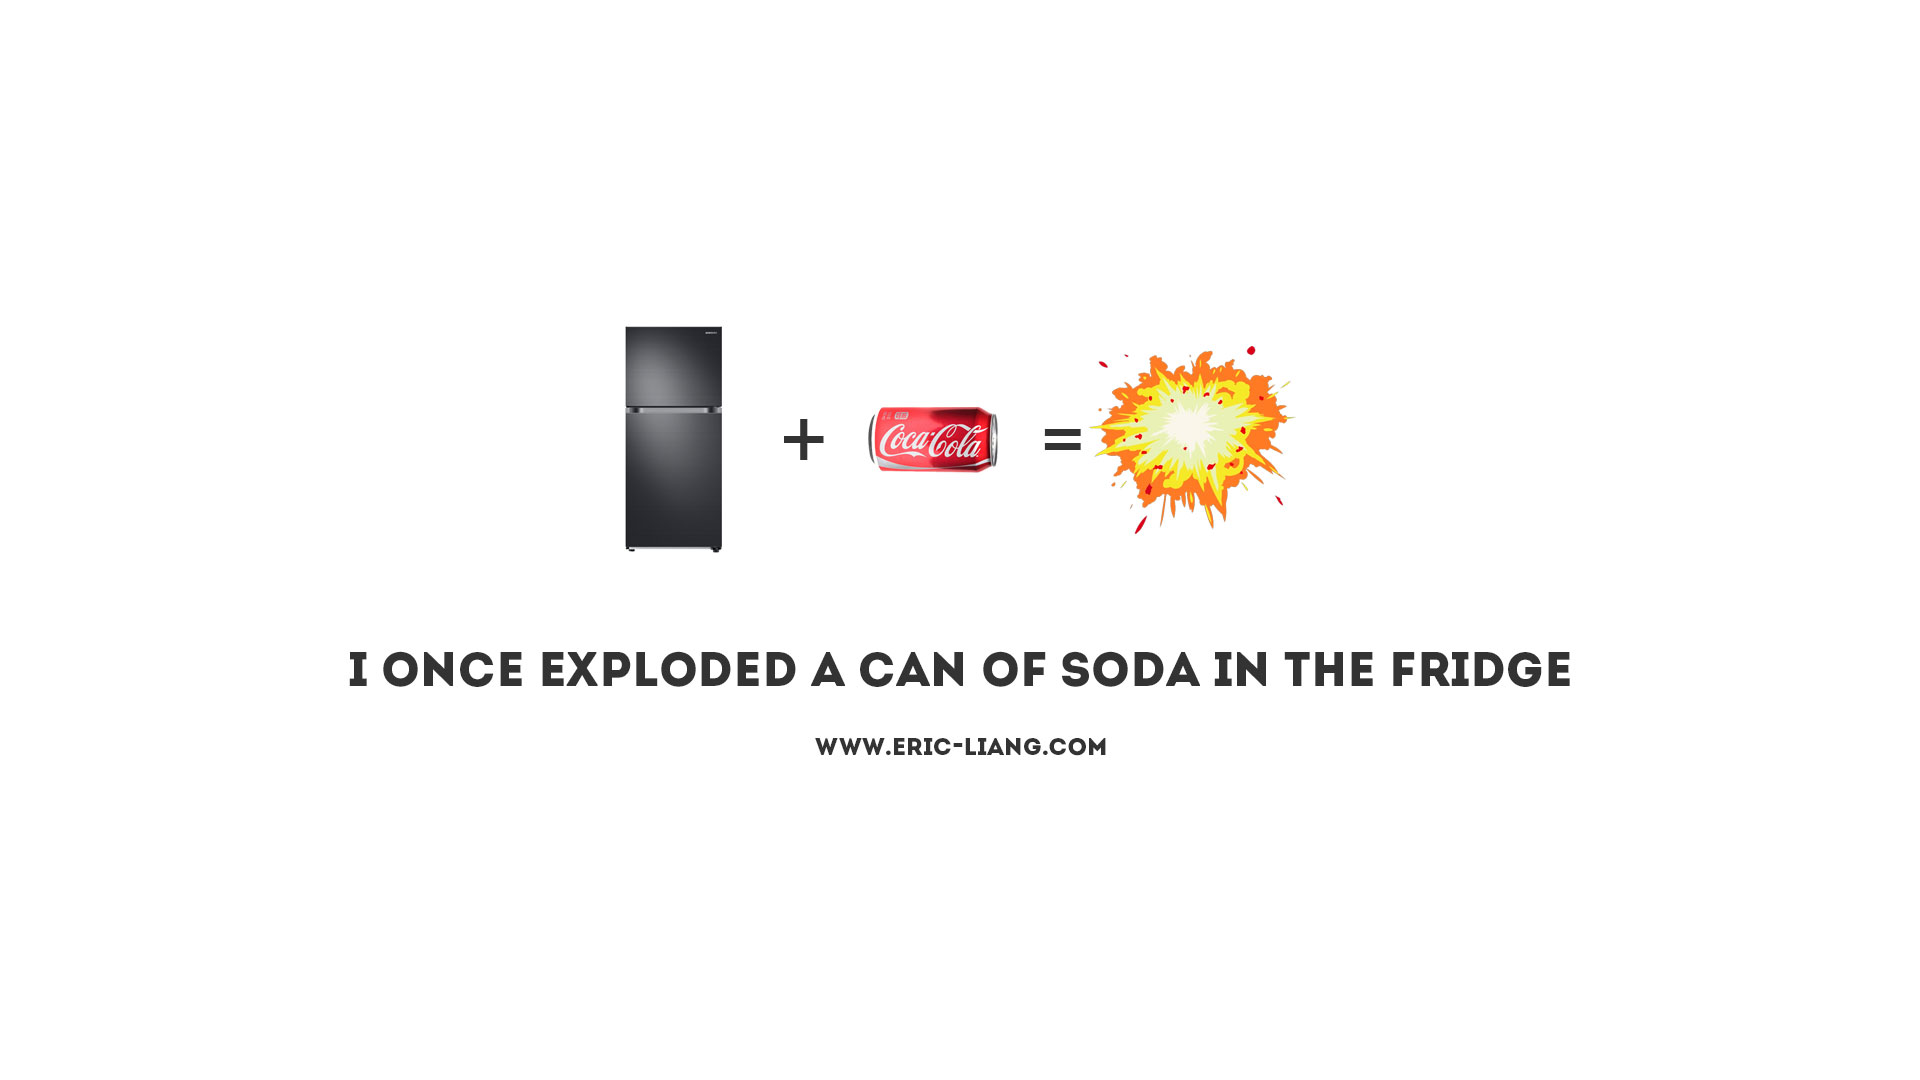 I Once Exploded A Can Of Soda In The Fridge